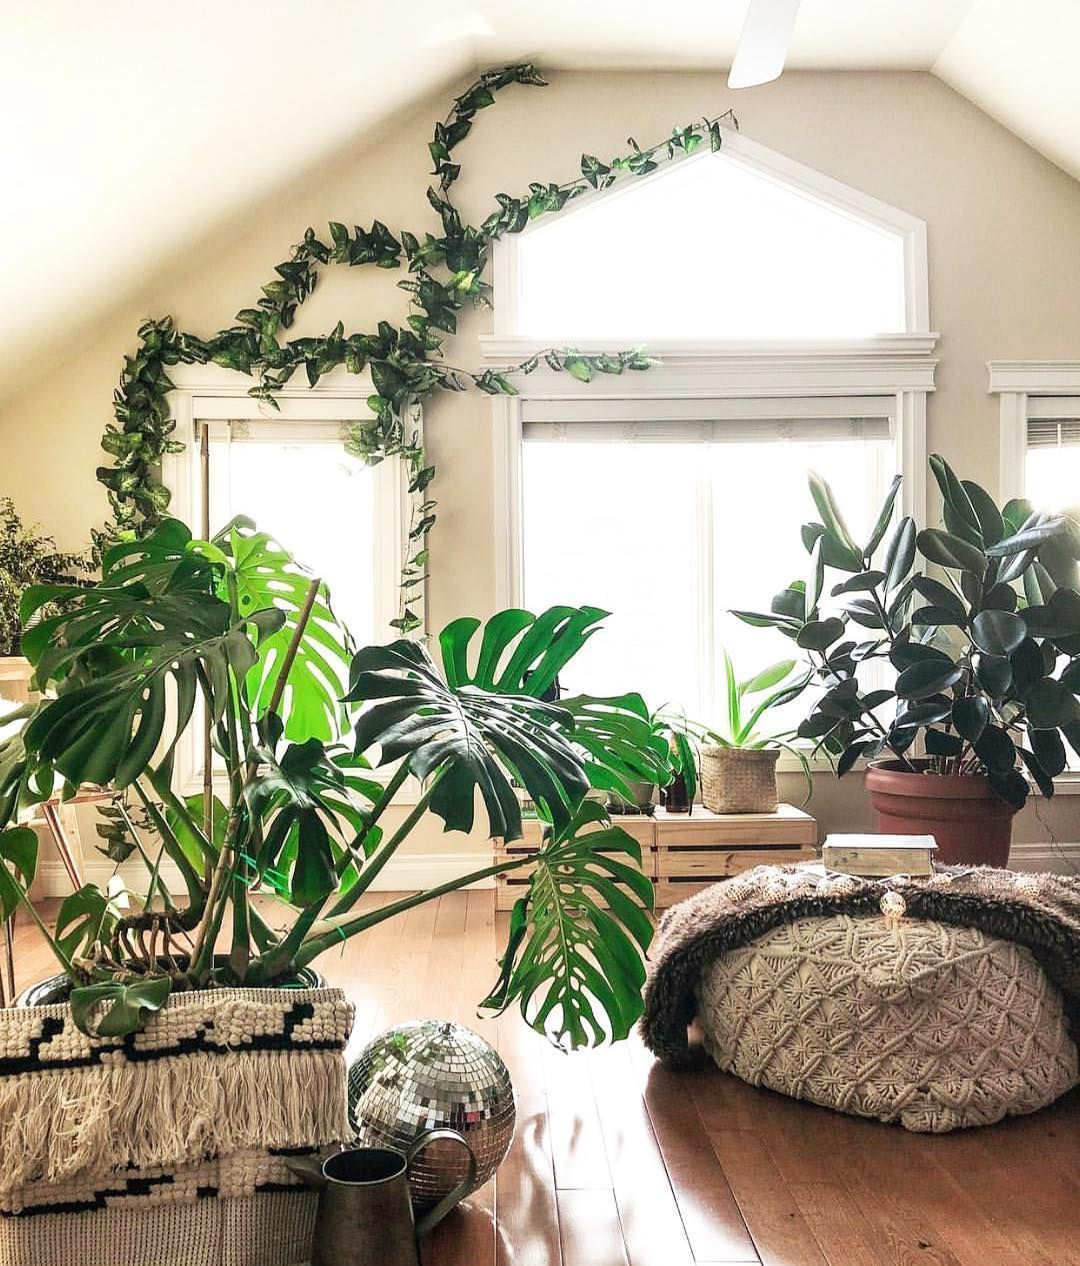 Interior exterior indoor garden plants houseplants house design also huge that make  statement gardening bob rh pinterest